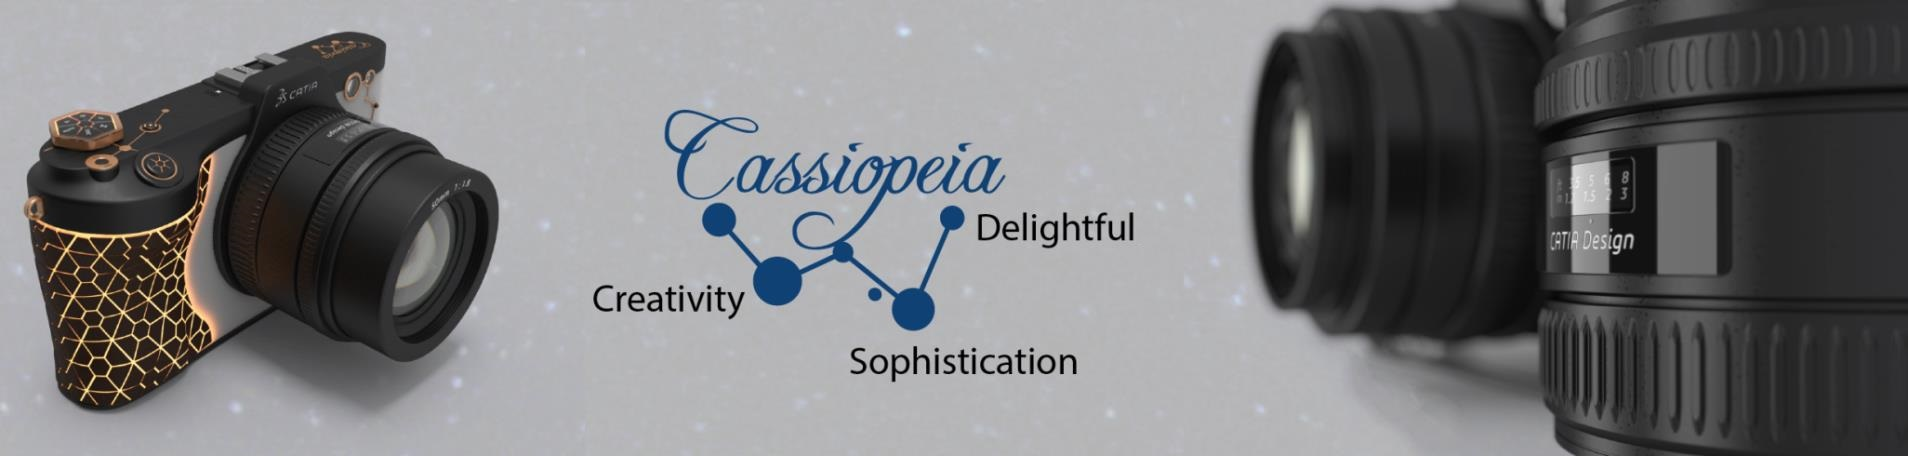 cassiopeia project